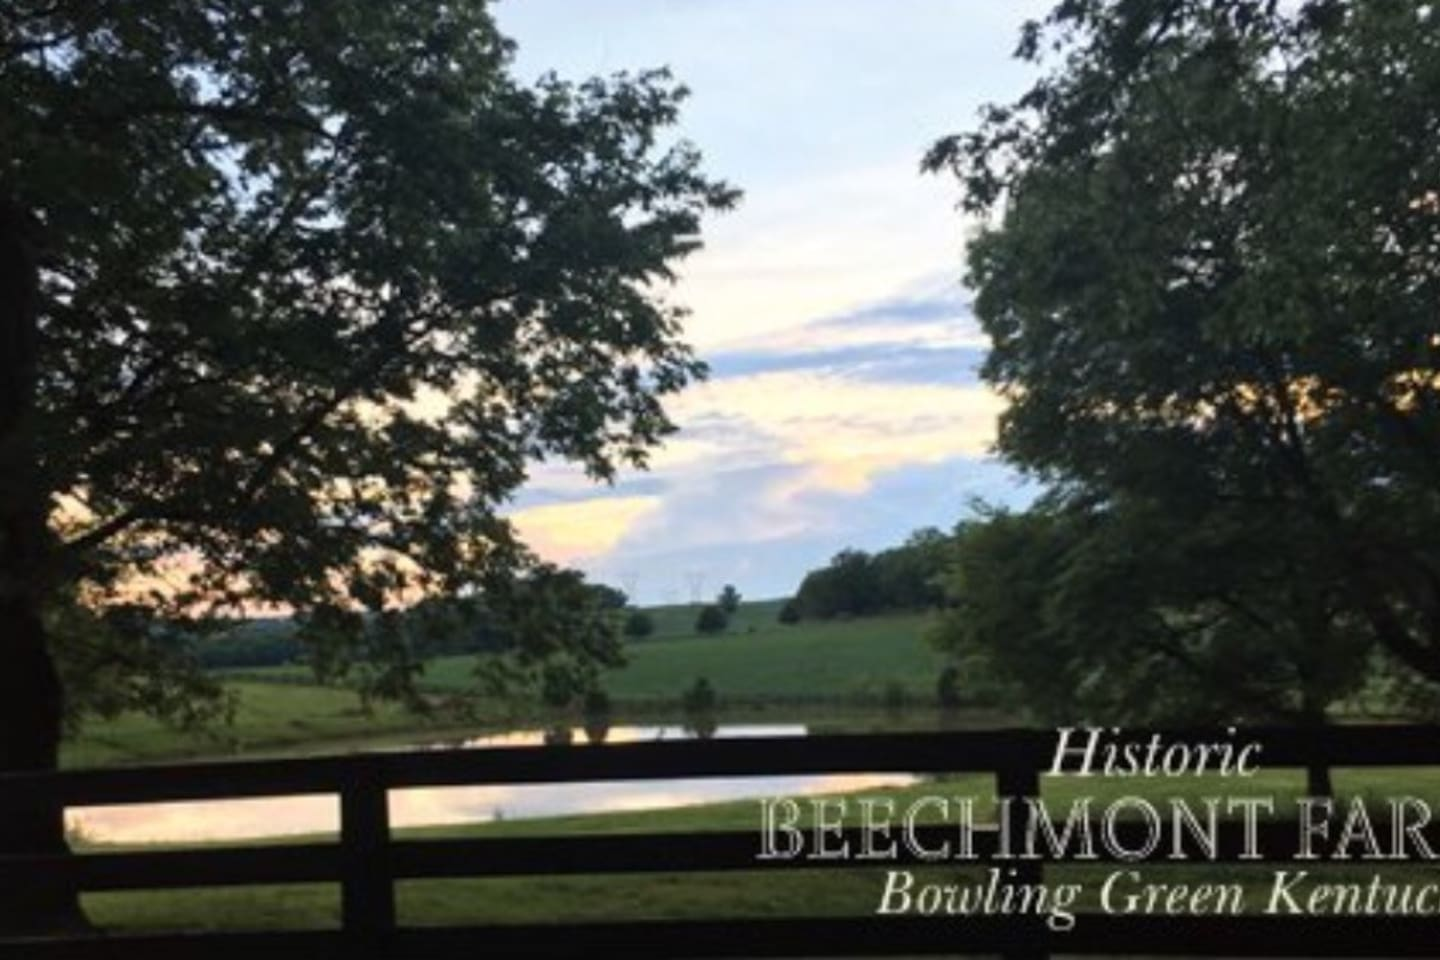 Historic Beechmont Farm is excited to have visitors!